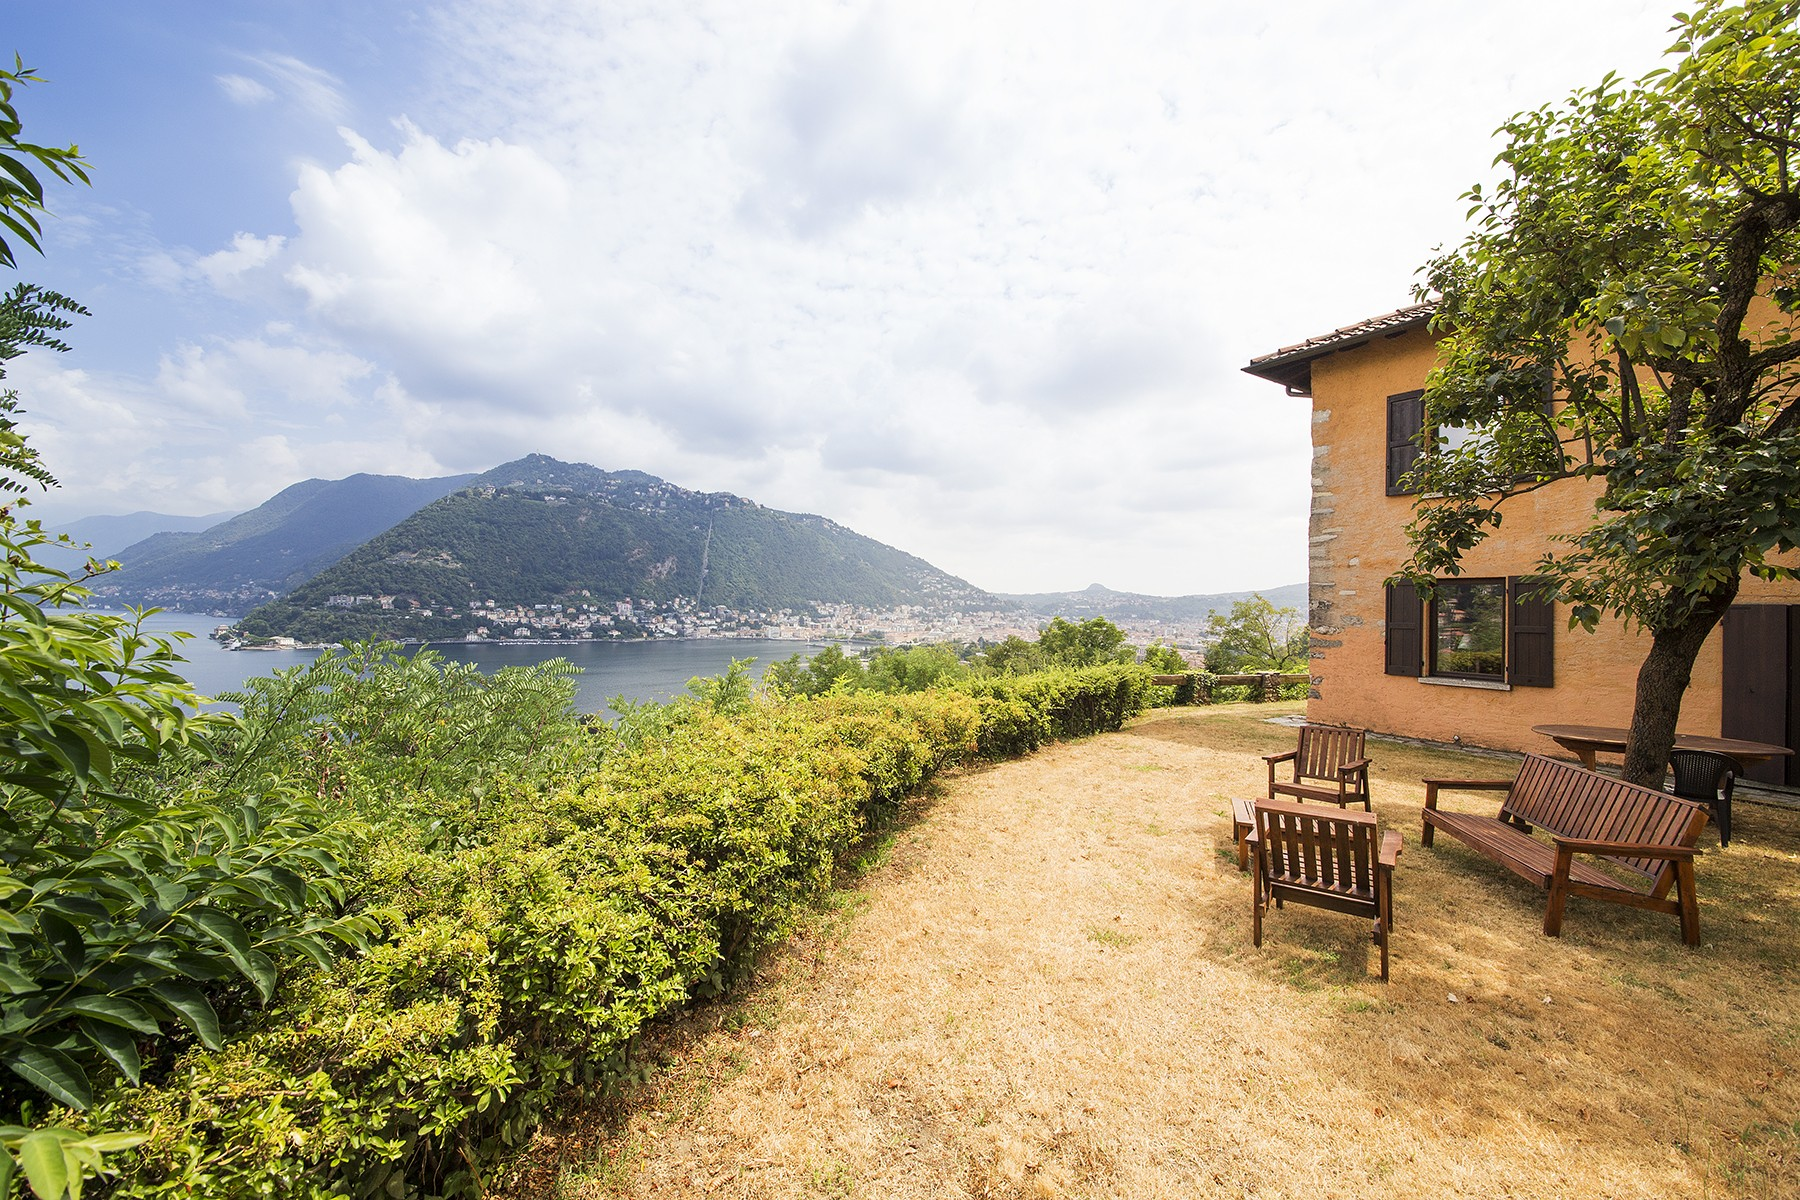 Maison unifamiliale pour l Vente à Charming villa on the hills of Como with breath-taking views Via Imbonati Como, Como 22100 Italie